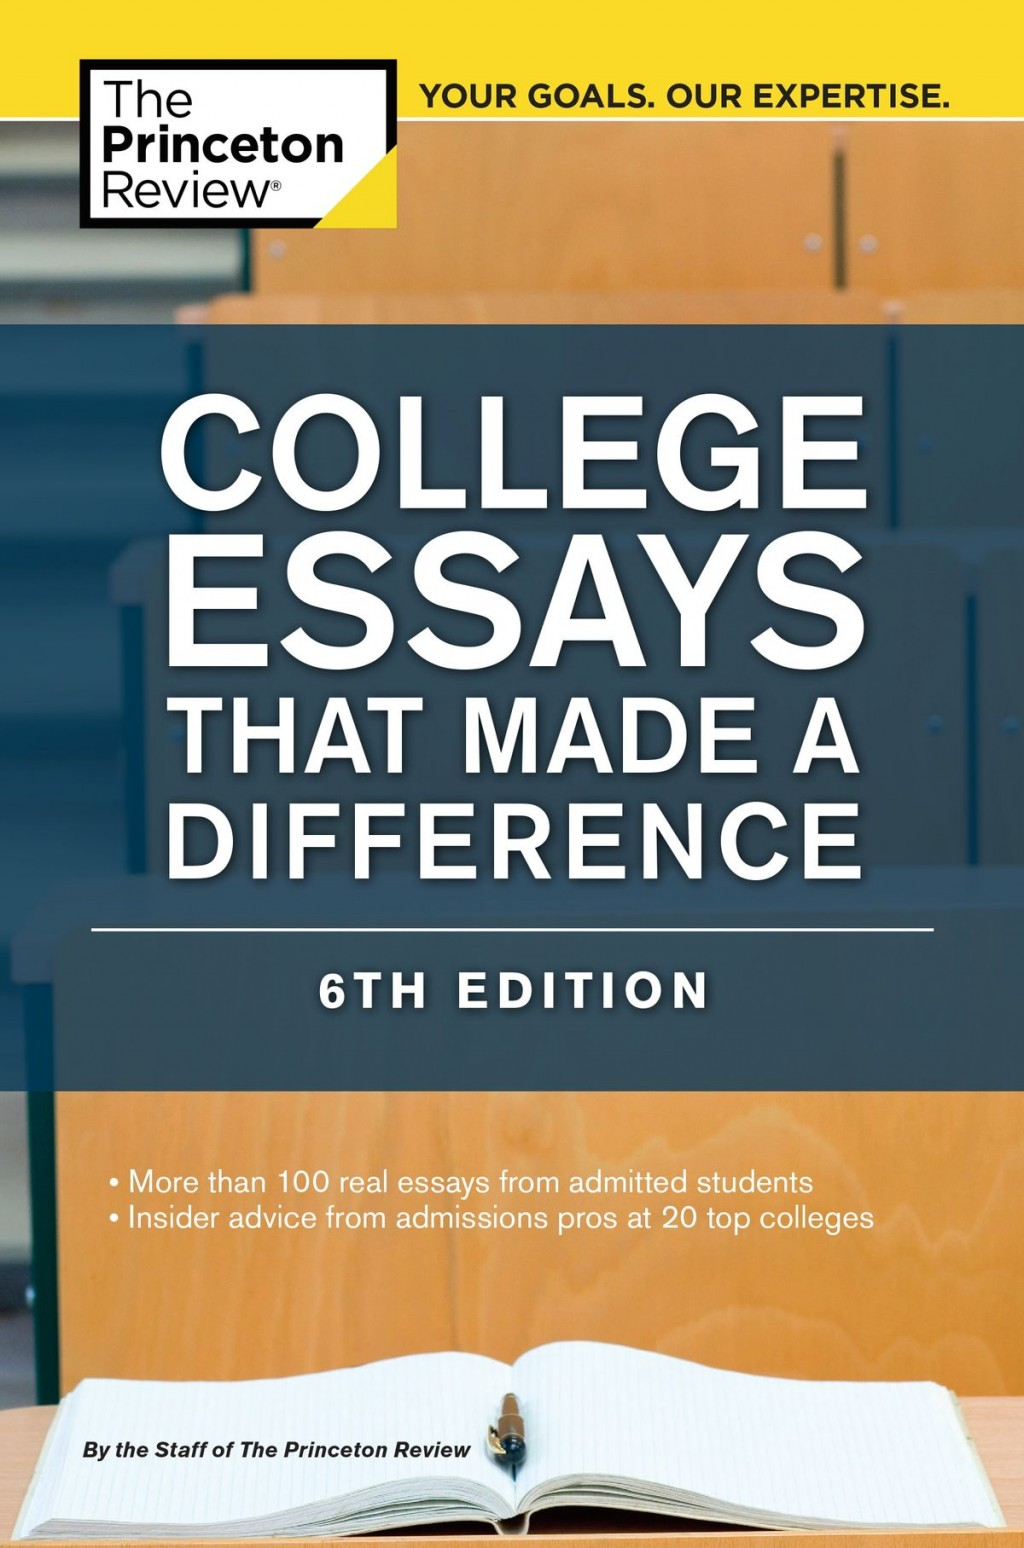 023 Princeton Essays Essay Example College That Made Difference 6th Shocking 2018 Review Grader Help Large